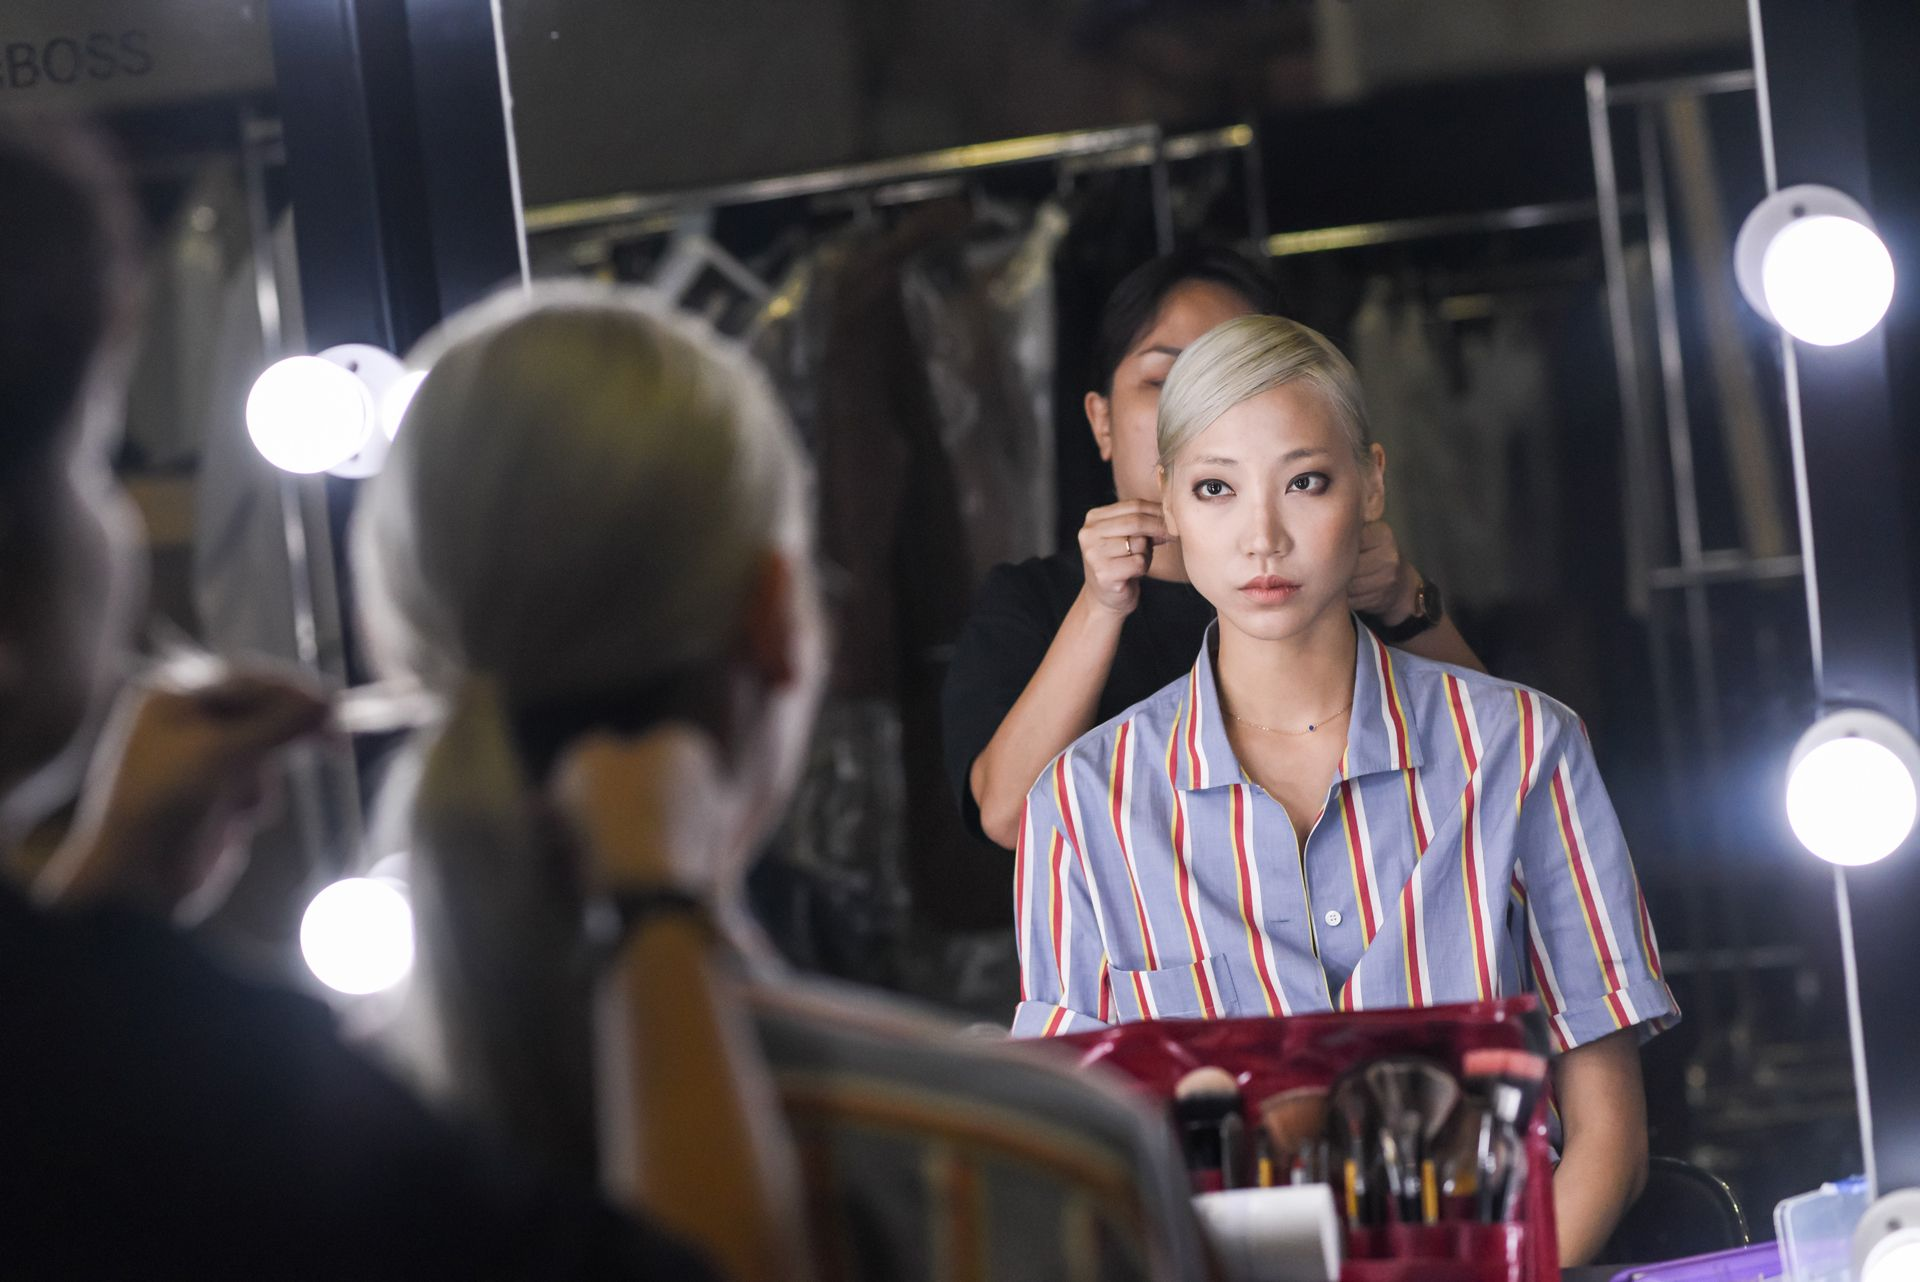 Model Park Soo Joo Backstage at the BOSS Fall/Winter 2018 Show